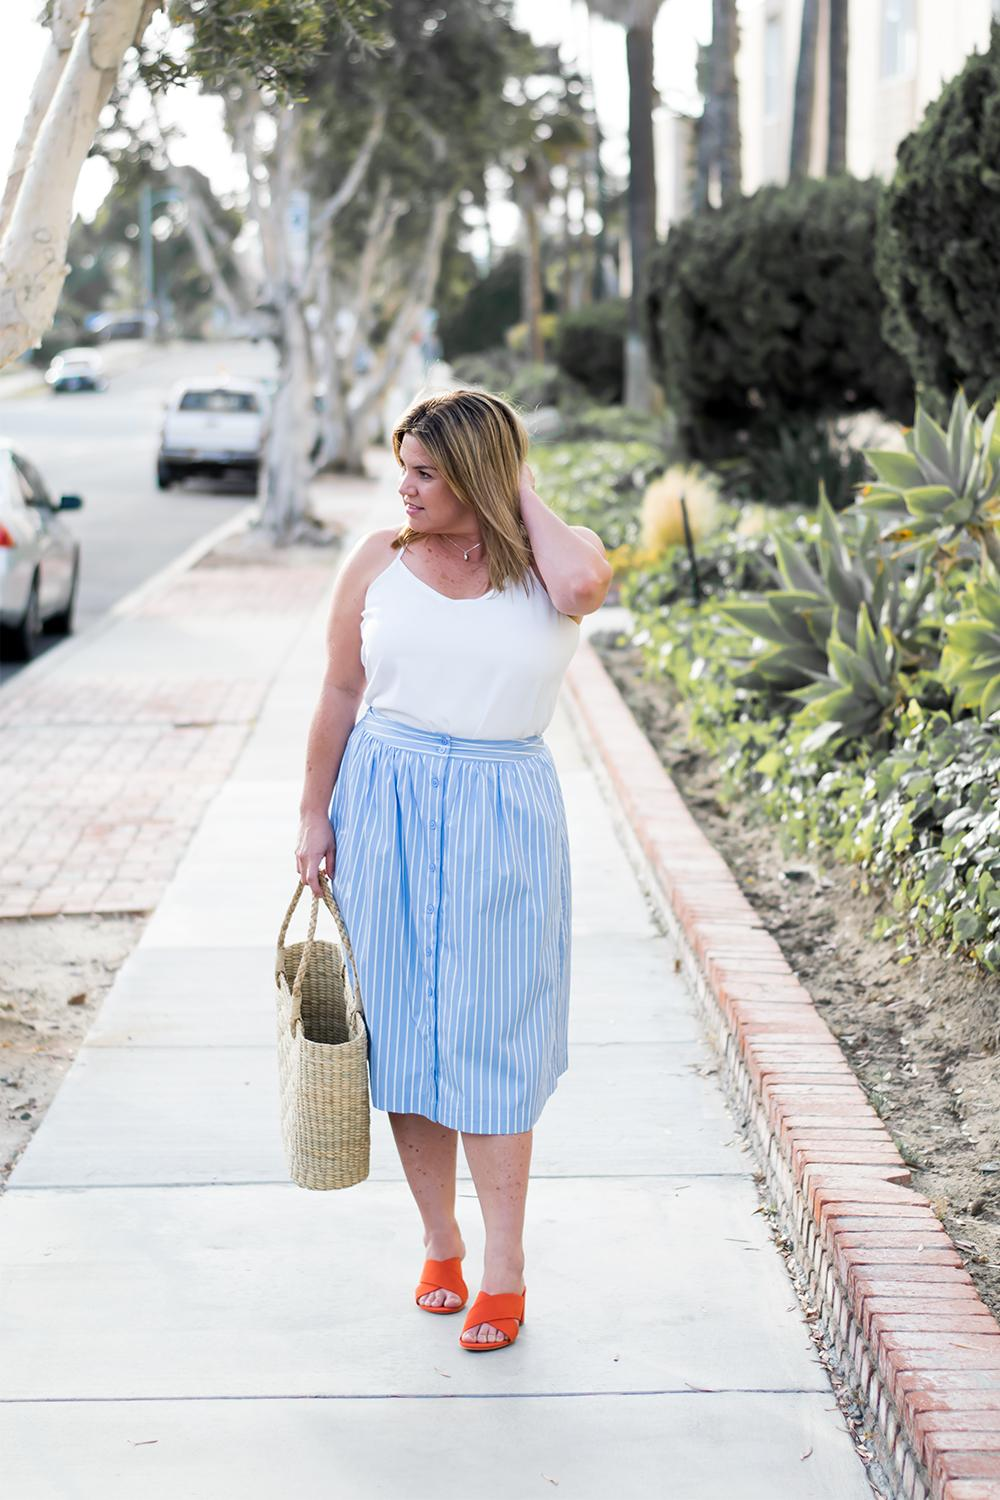 Buttoned-Midi-Skirts-and-Colorful-Mules-Top-Blogger-Outfits-for-2017-Barefoot-in-LA-Fashion-Blog-Style-Ideas_1050